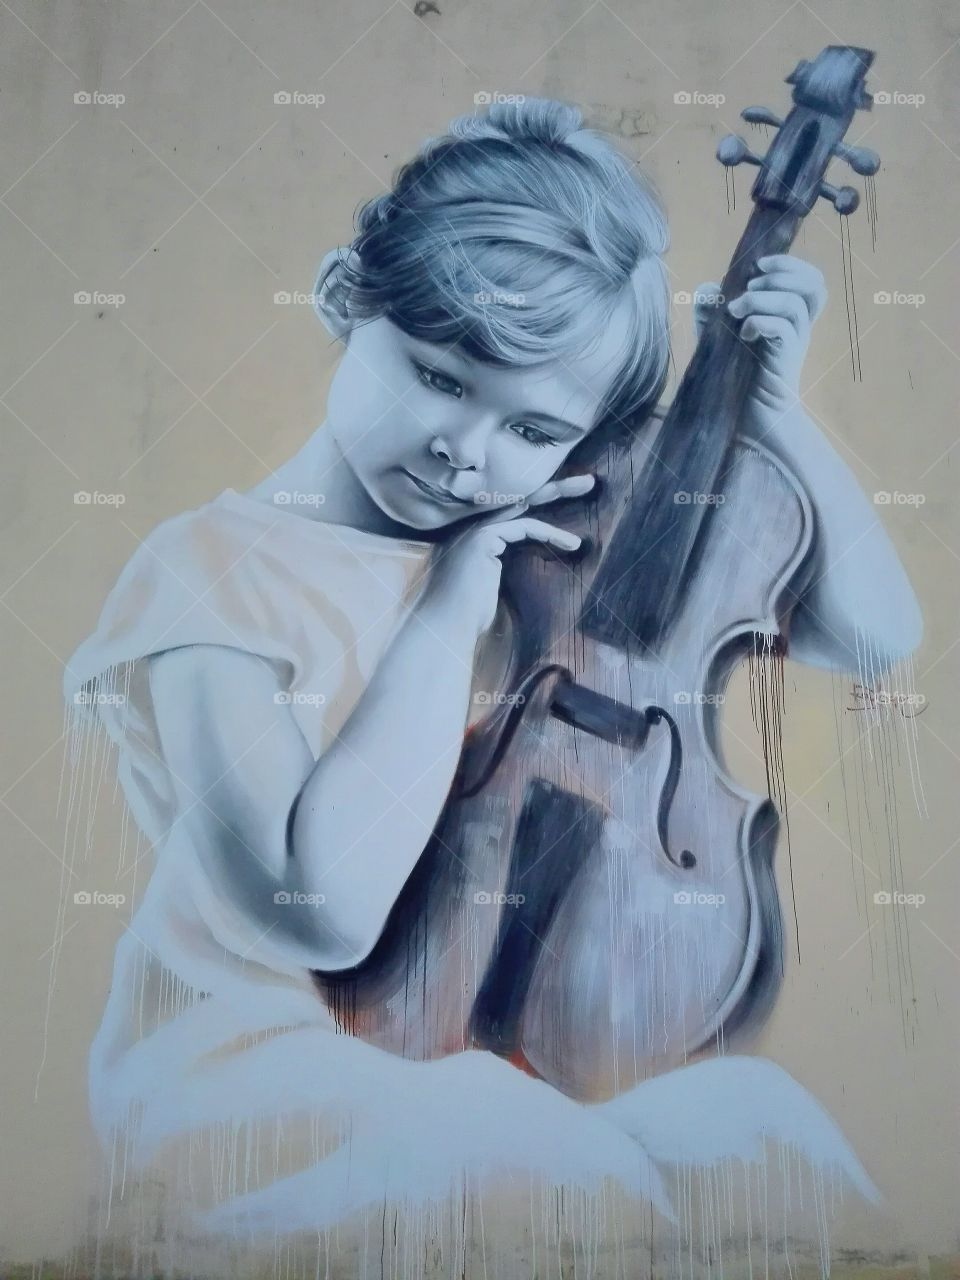 Girl with a violin, graffiti on the wall